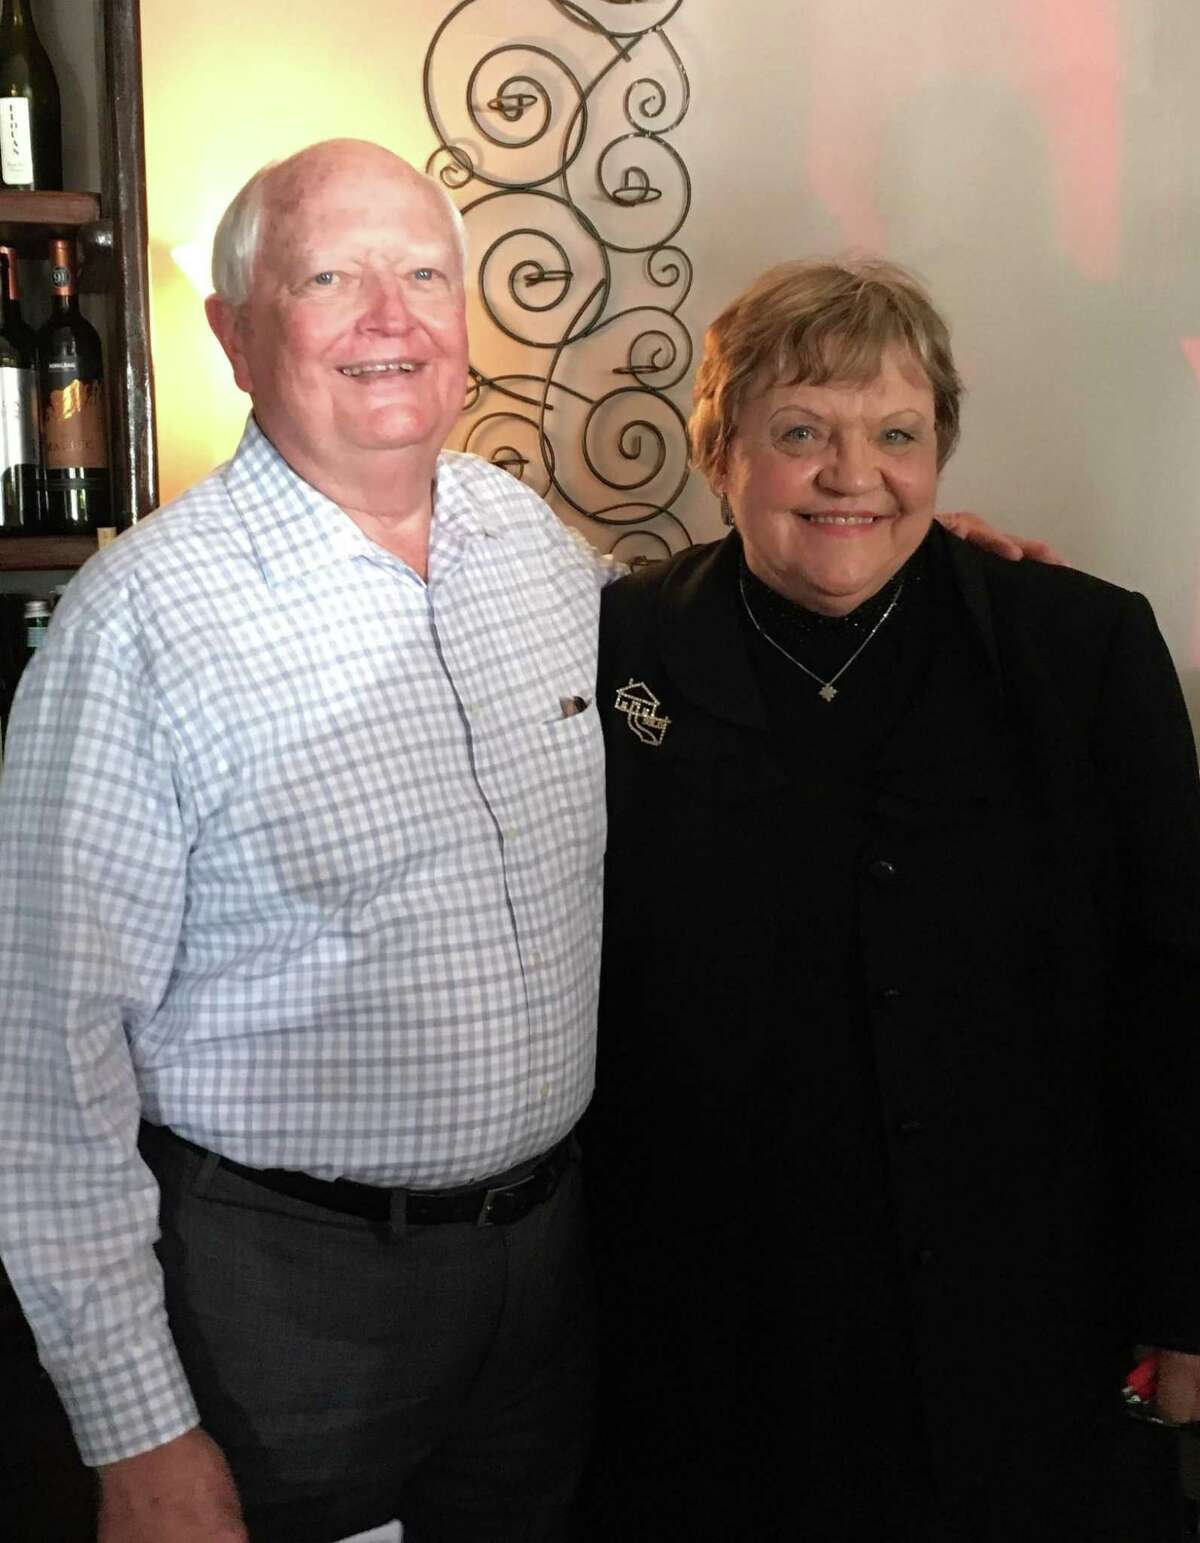 Don Elder Jr., second vice chair of the Metropolitan Transit Authority board of directors, and Clara Jean Machann, president of the Katy Business Association, pose for a photo after a recent KBA meeting. Elder spoke to the business group about Metro's $3.5 billion bond proposal on the Nov. 5 ballot.